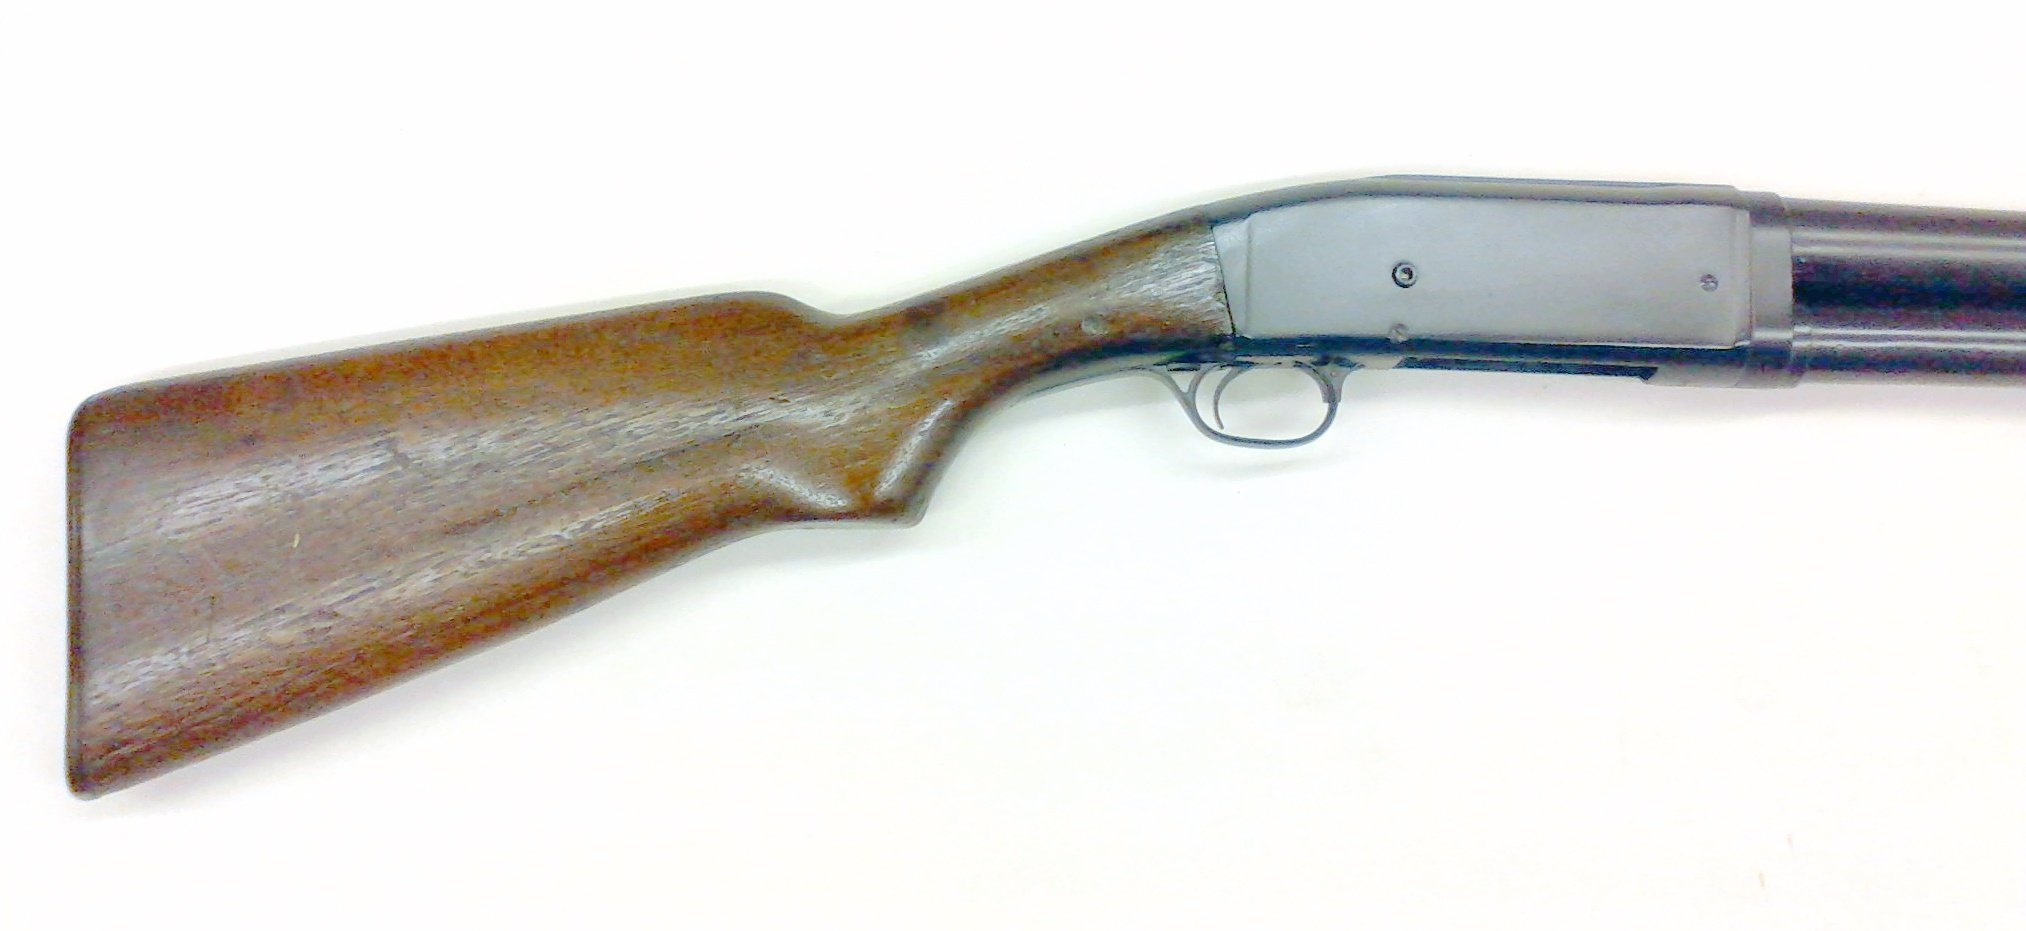 We cerakoted this Remington model 11 with Socom blue, we also did extensive internal work to the action to bring it to working condition.